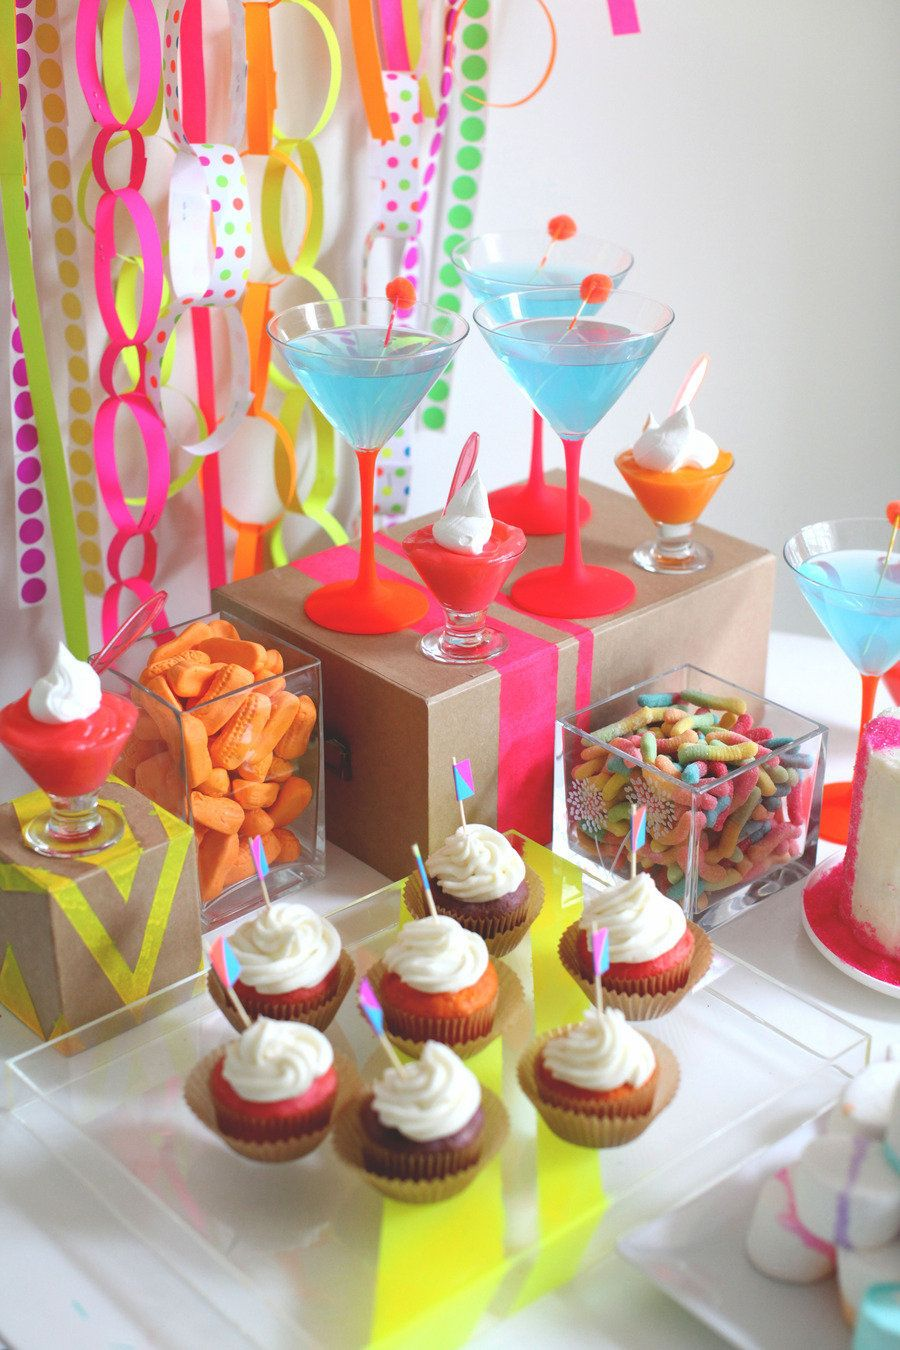 17 Fun Party Themes for Any Occassion Fun party themes